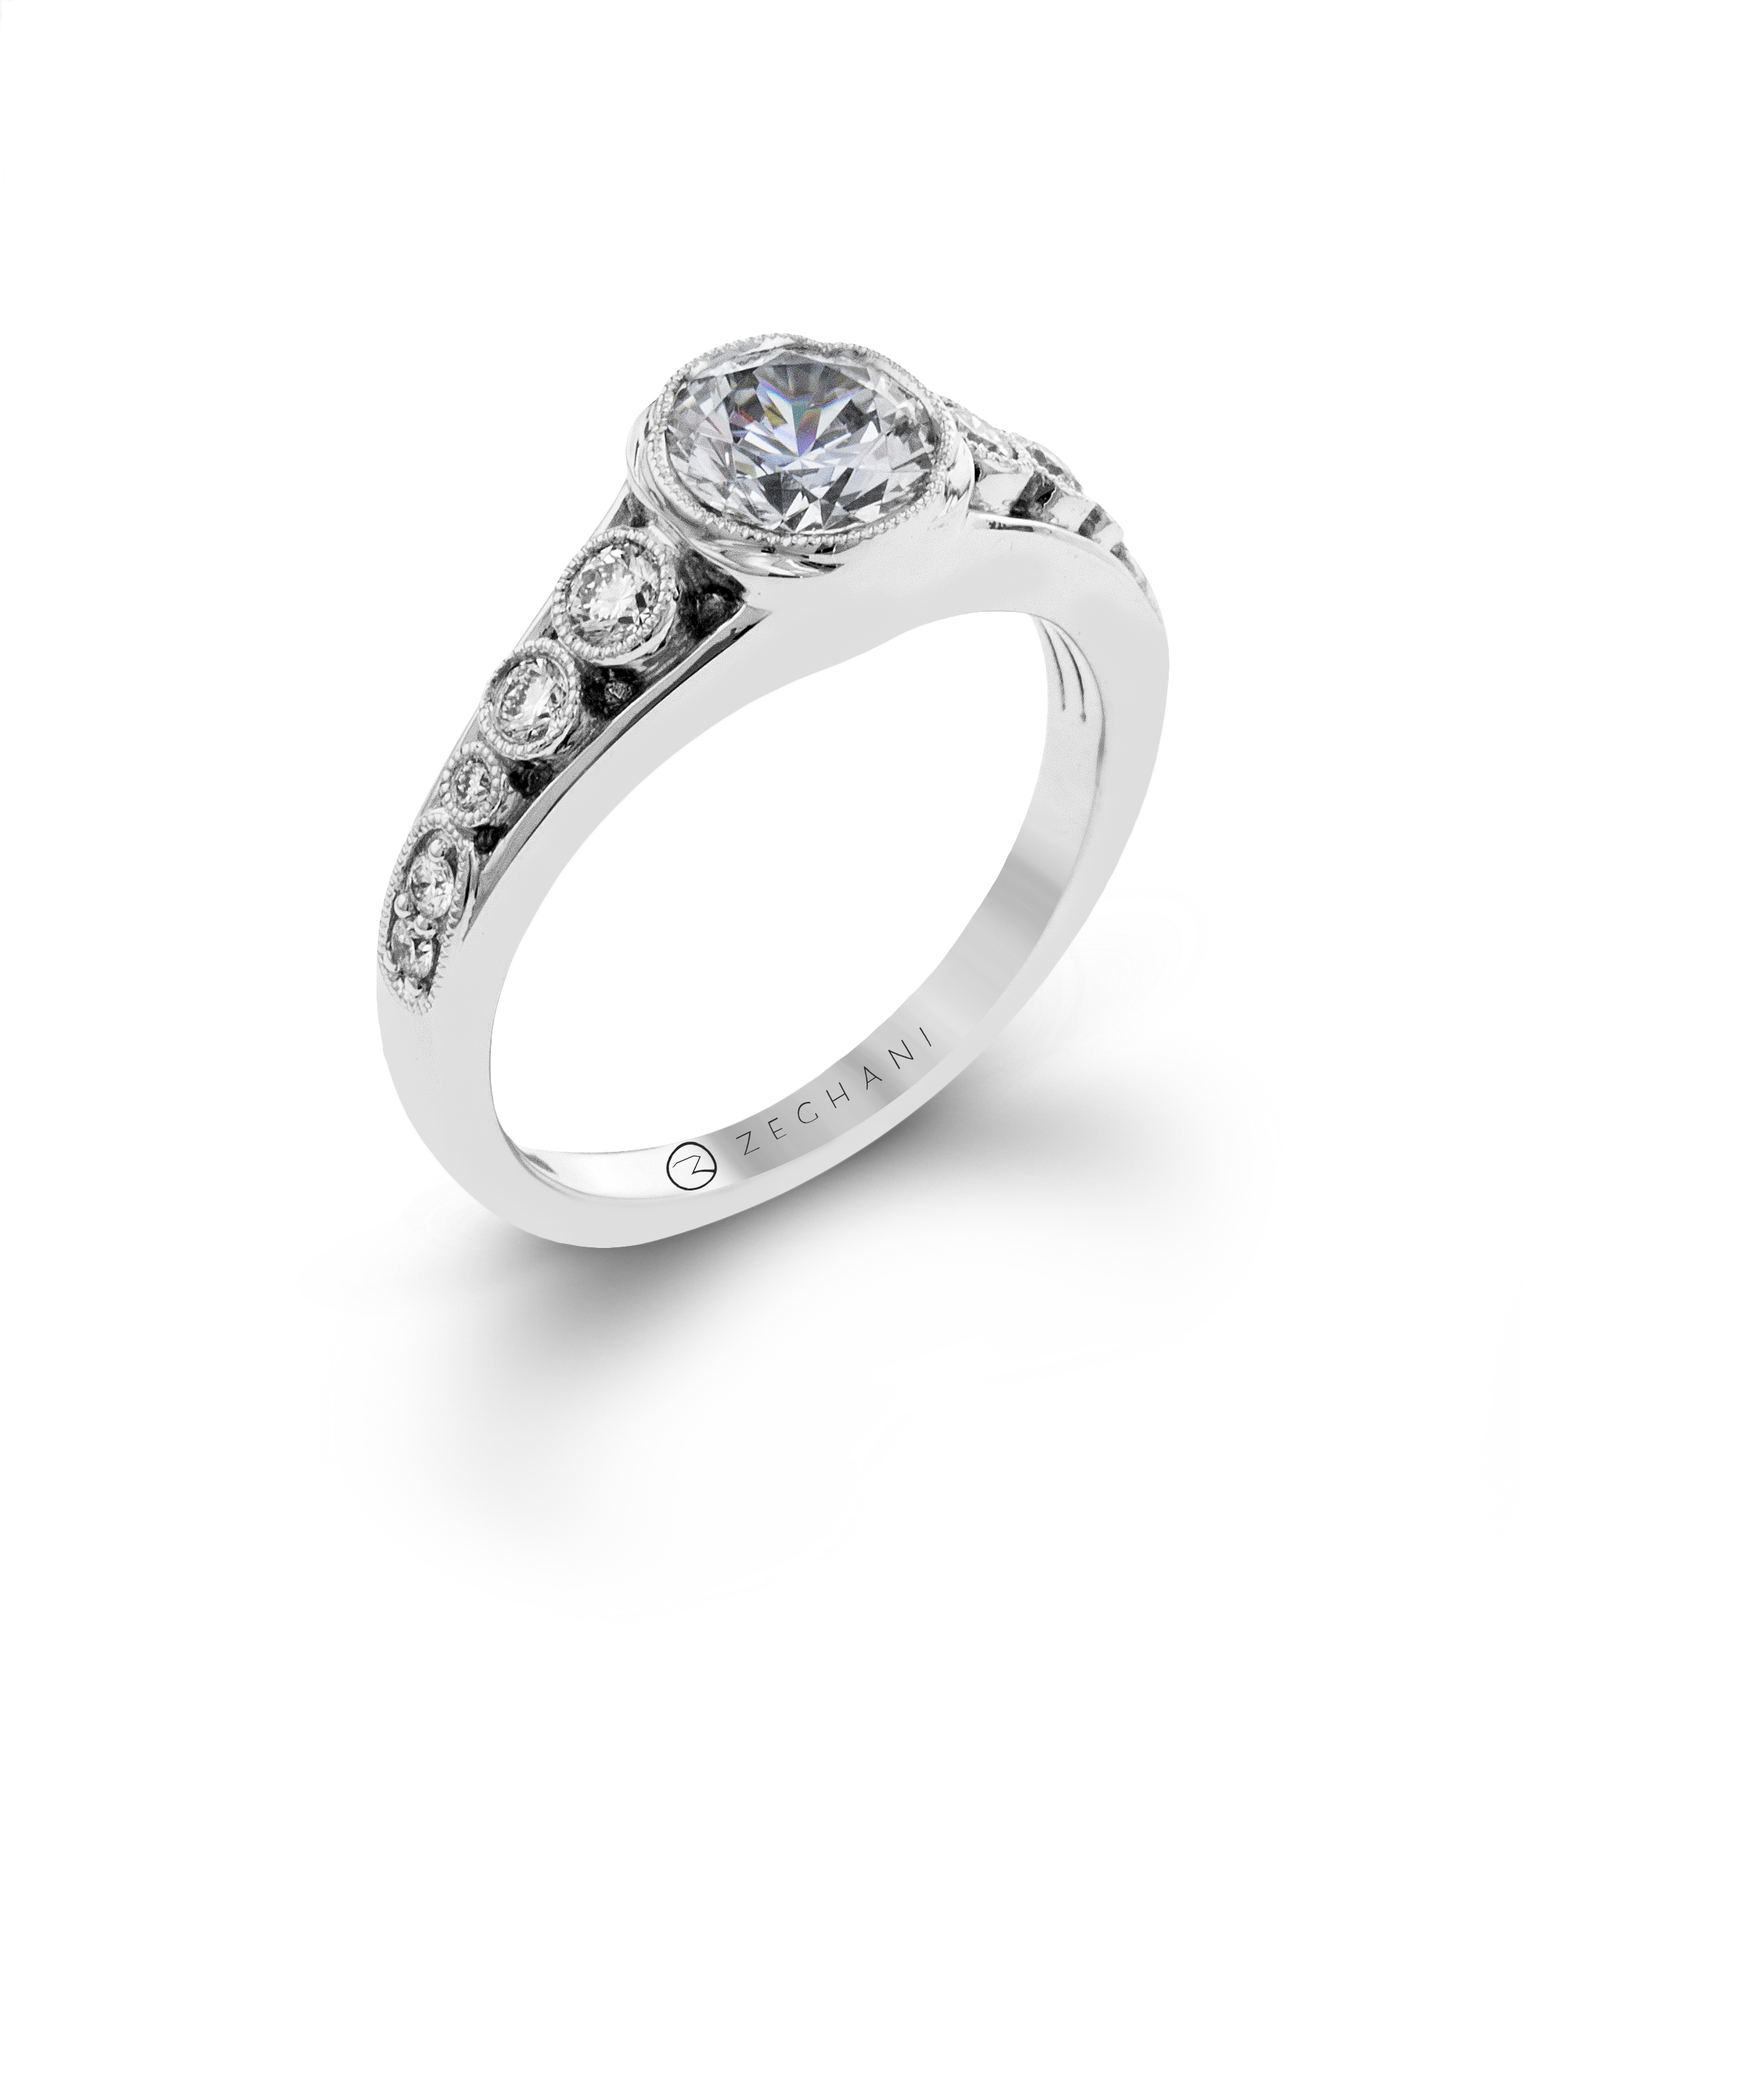 g h ring vs white jewellery in gold halo wedding newest diamond settings qikrtyb round engagement promise